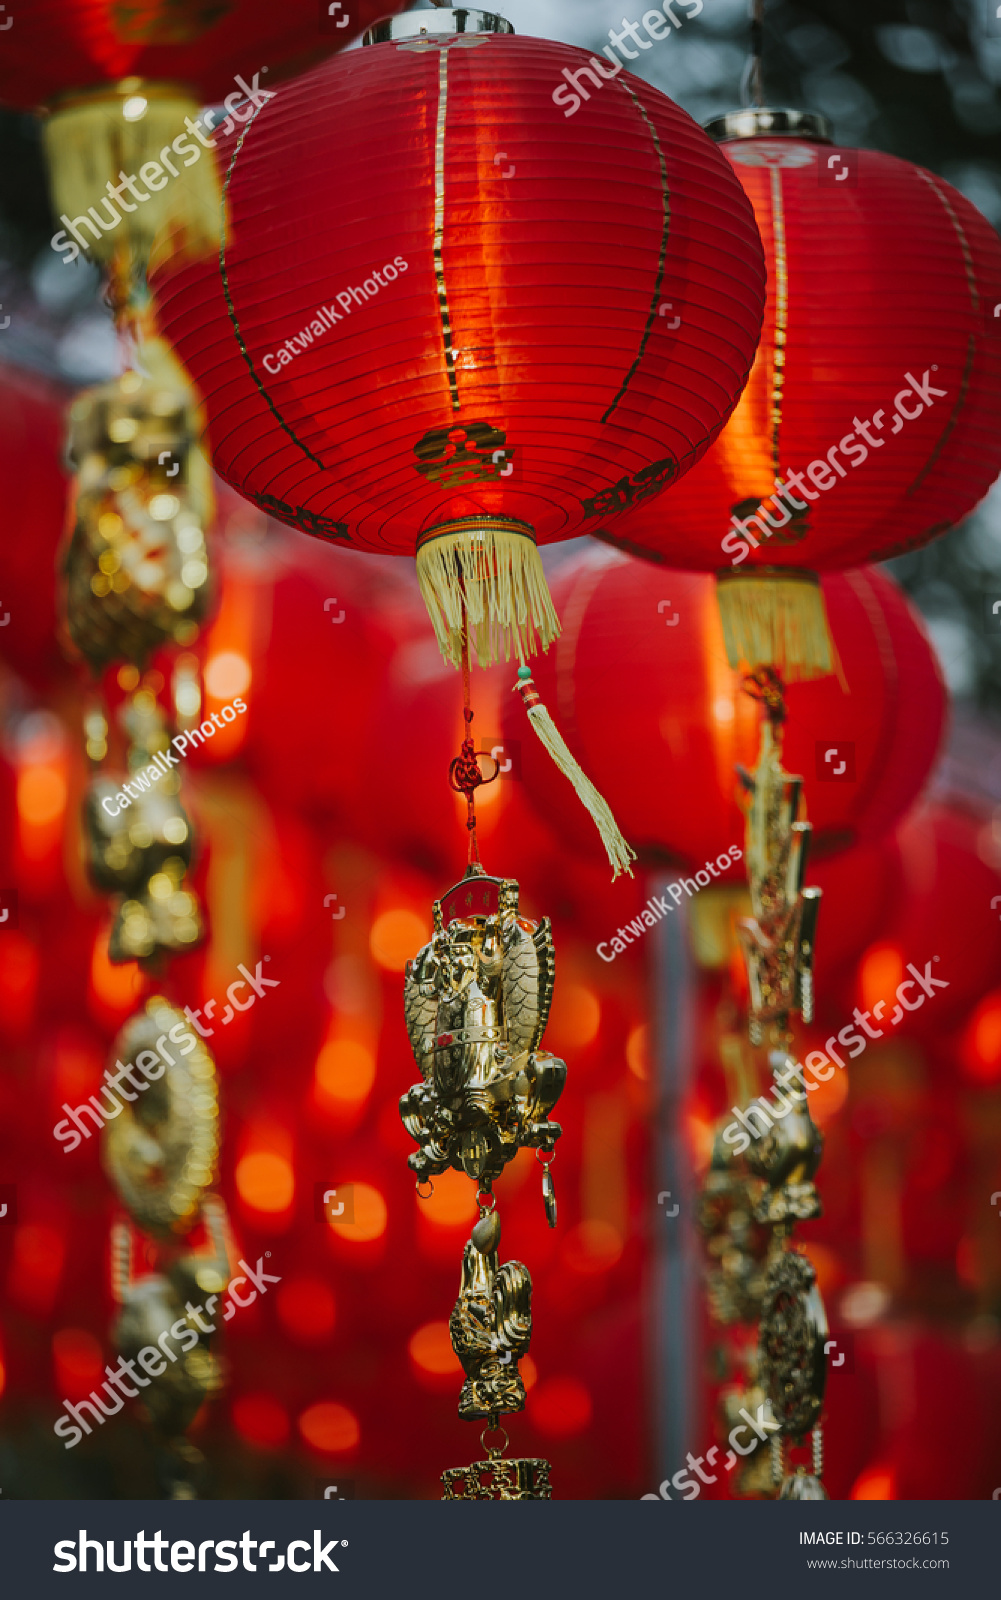 Chinese new year 2017 decorations stock photo 566326615 for Decoration 2017